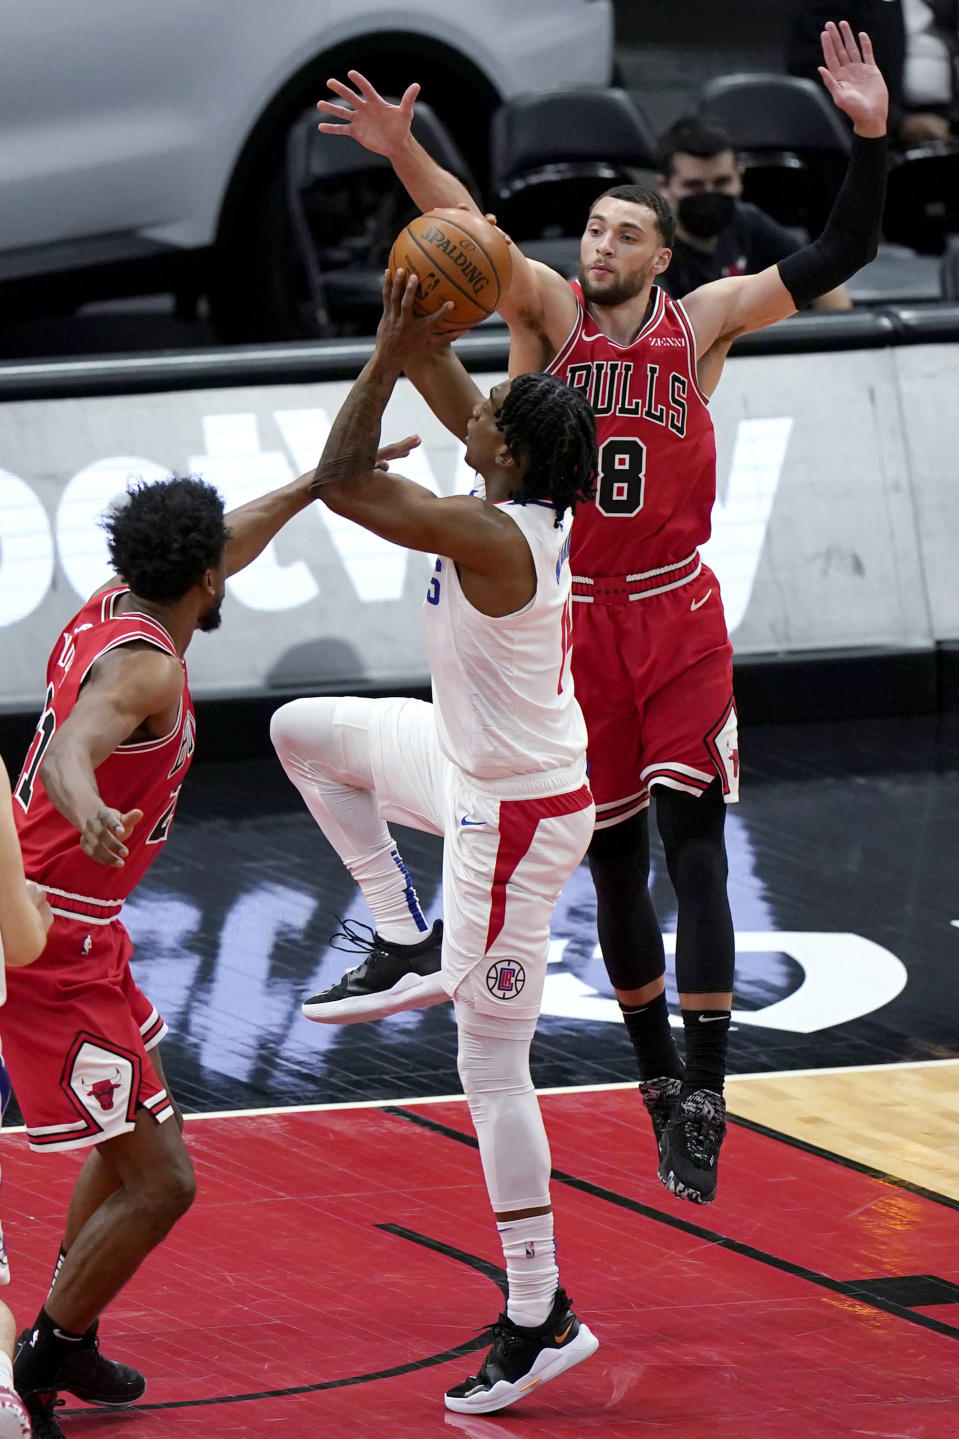 Los Angeles Clippers guard Terance Mann, center, goes up for a shot between Chicago Bulls forward Thaddeus Young, left, and guard Zach LaVine during the first half of an NBA basketball game in Chicago, Friday, Feb. 12, 2021. (AP Photo/Nam Y. Huh)